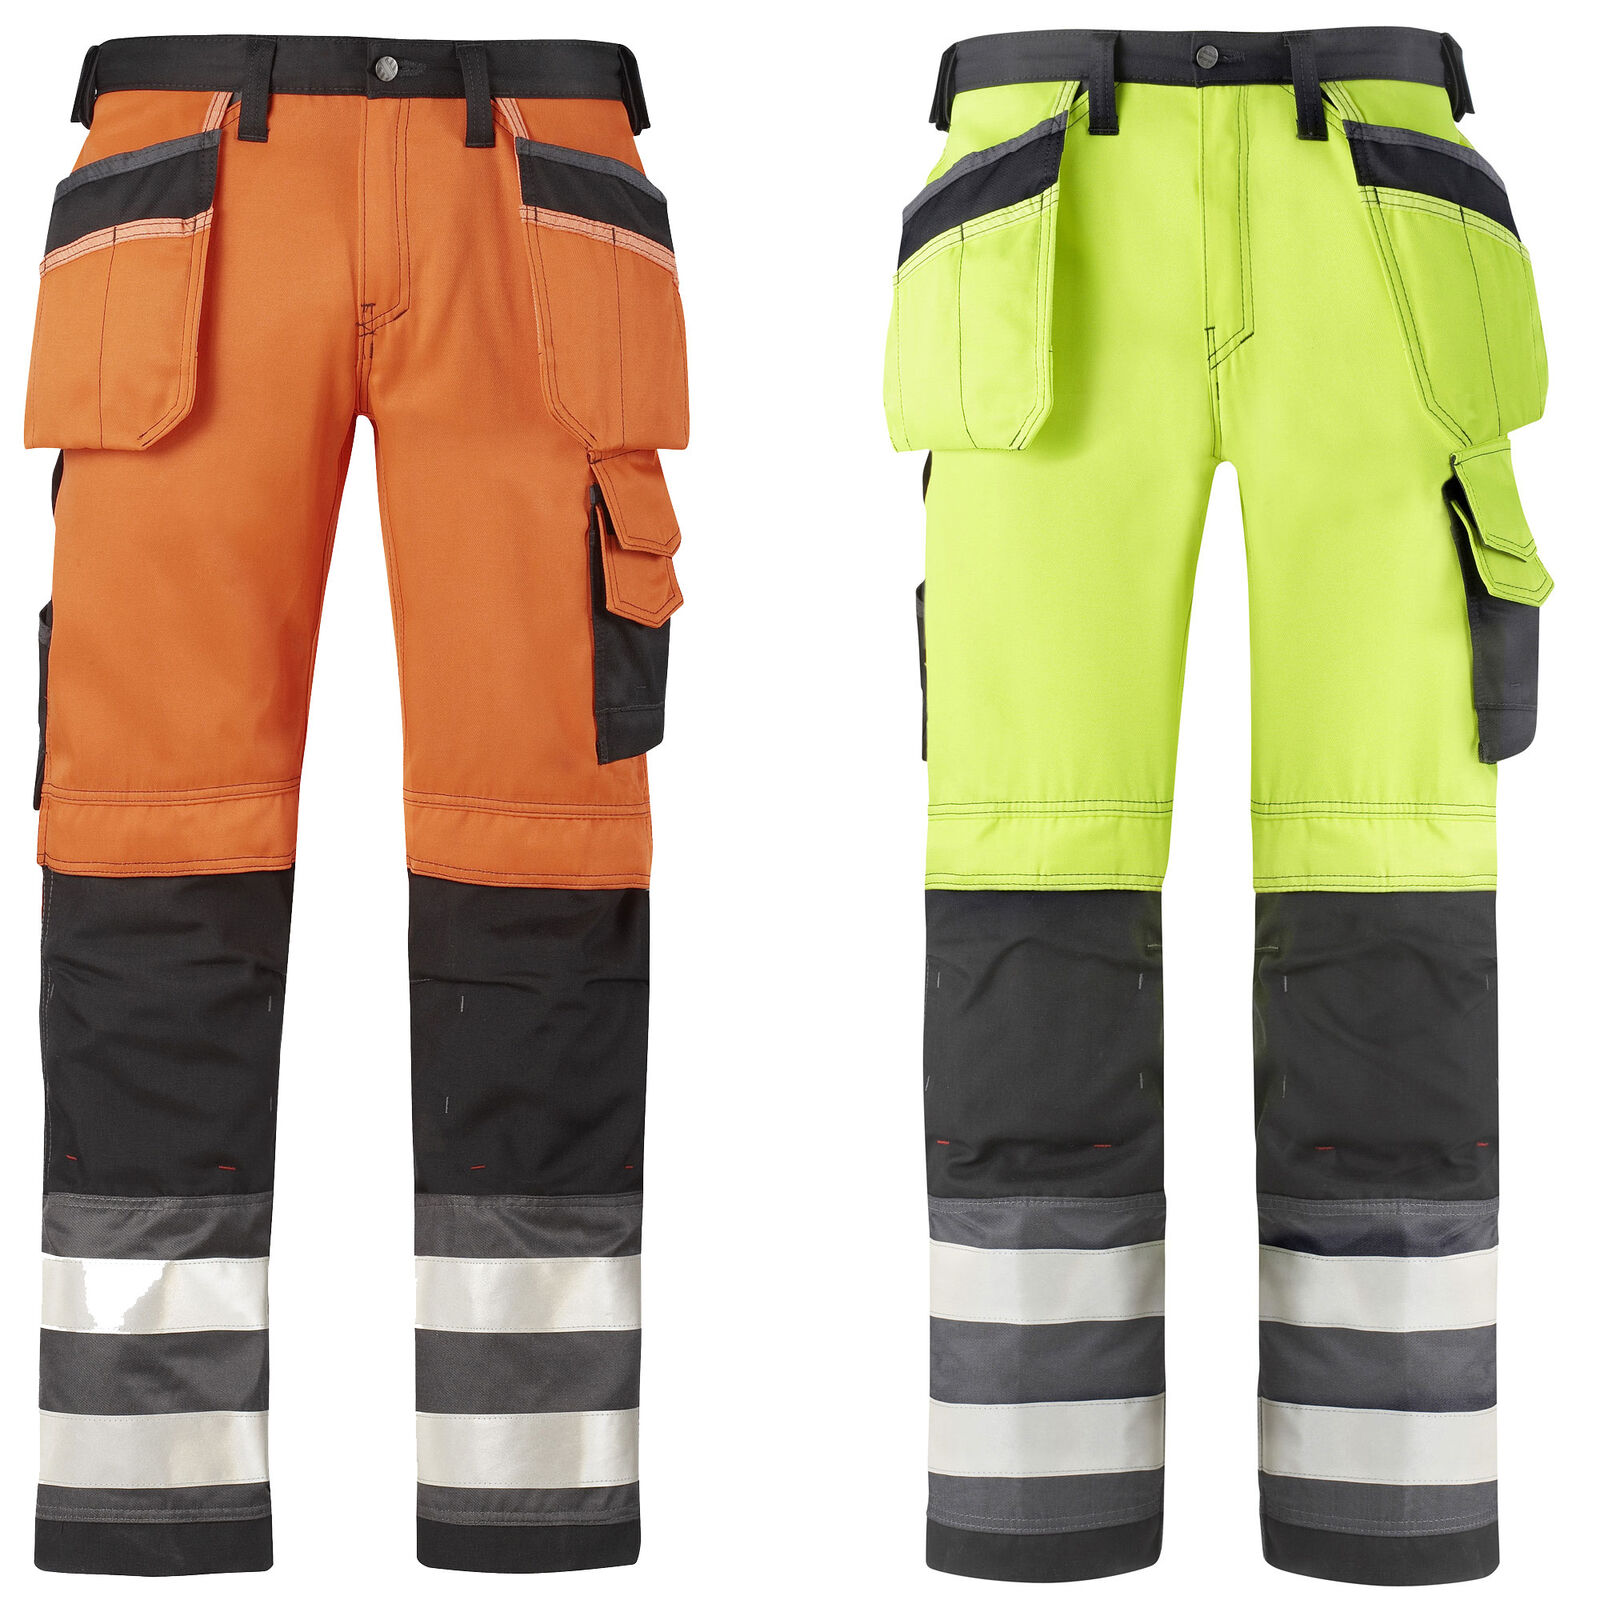 SNICKERS HI VIS Pantaloni. KNEEPAD & Fondina Tasche. classe 2. UK supplier-3233